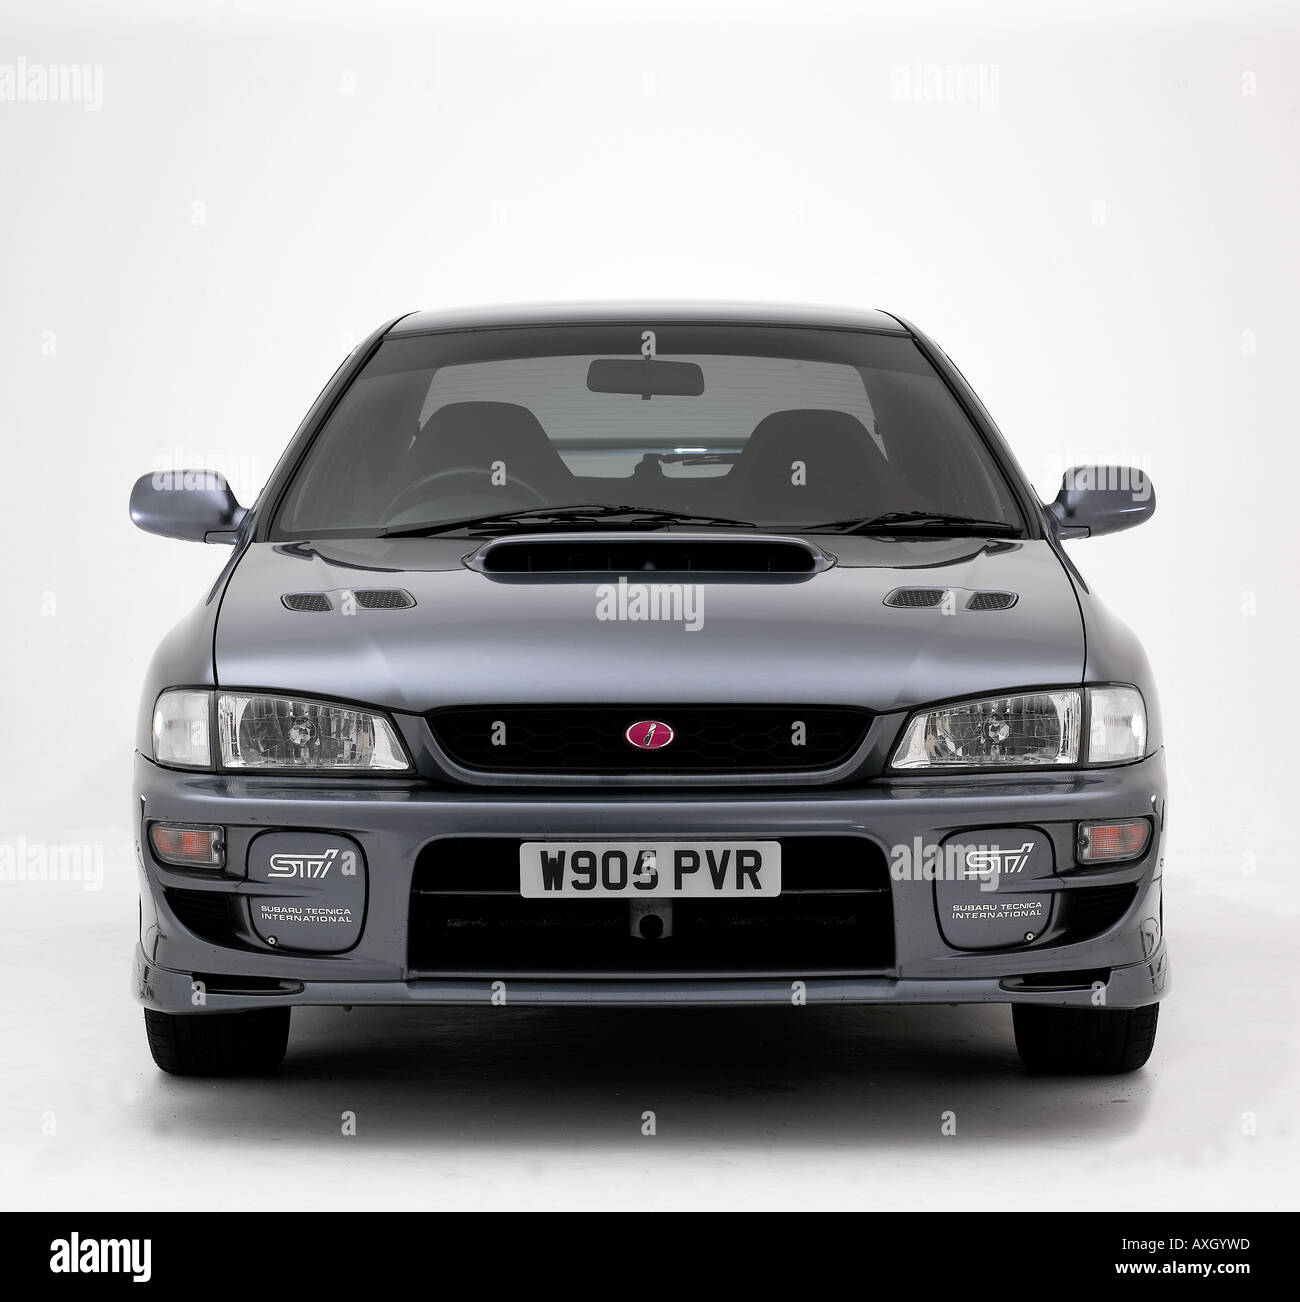 2000 Subaru Impreza Sti Stock Photo